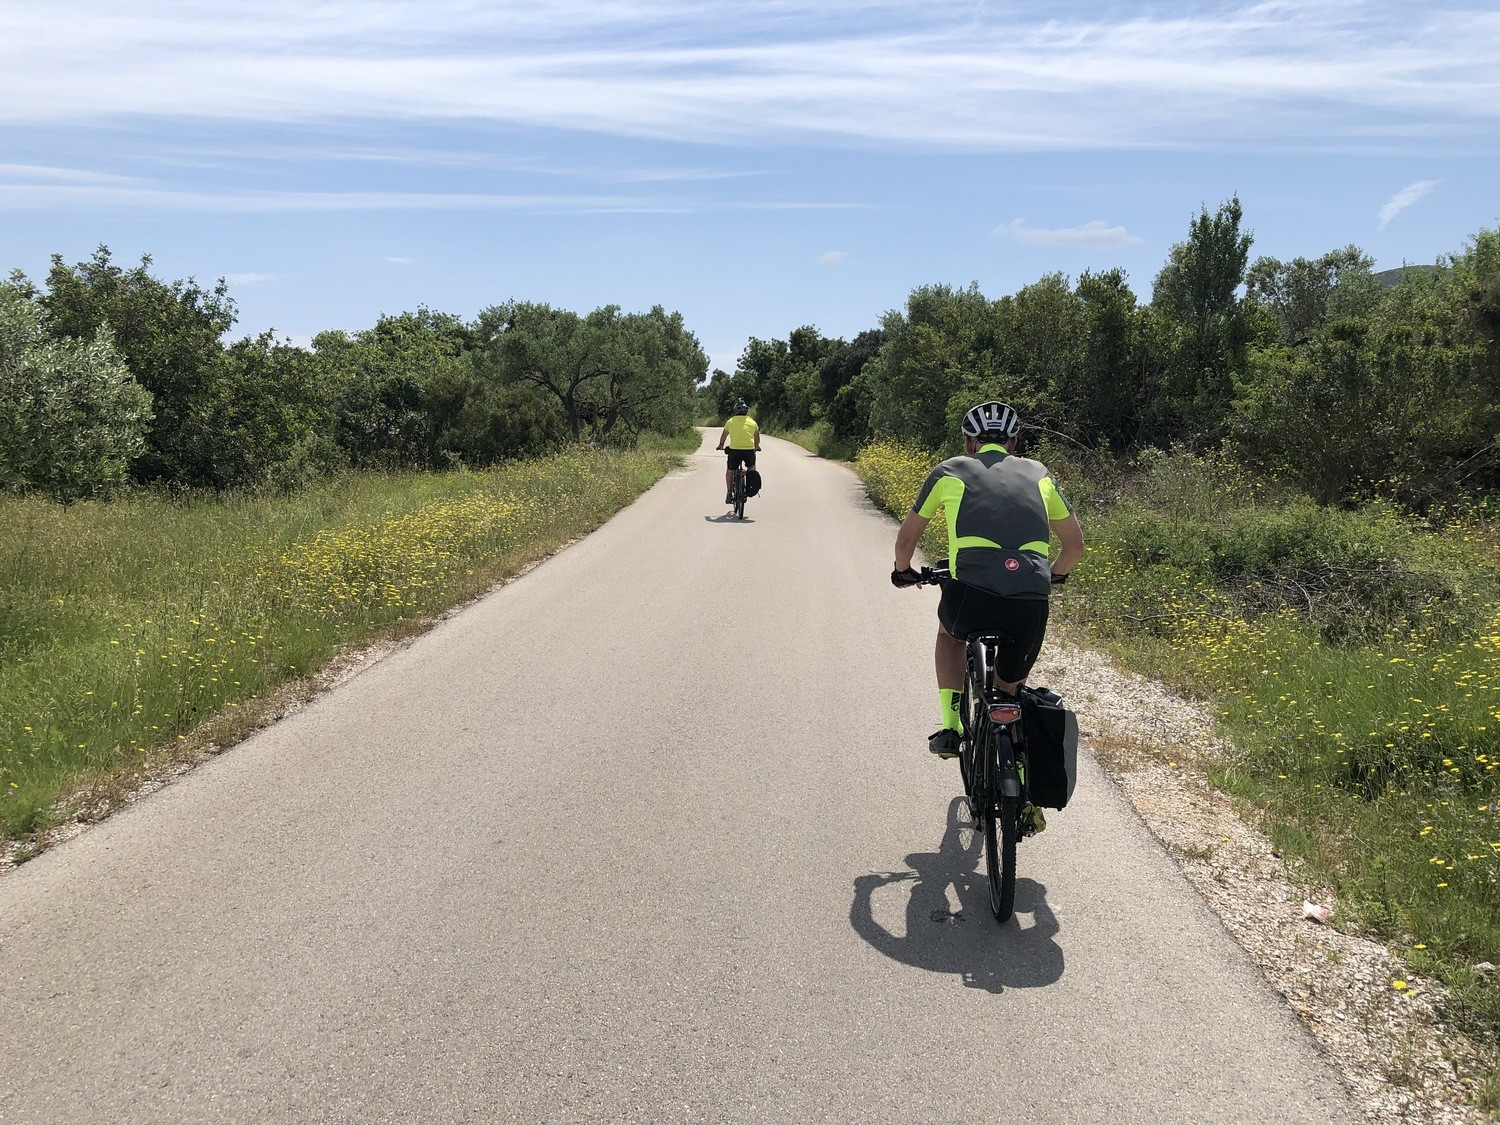 How should I load my touring bike? This rider chose rear panniers.